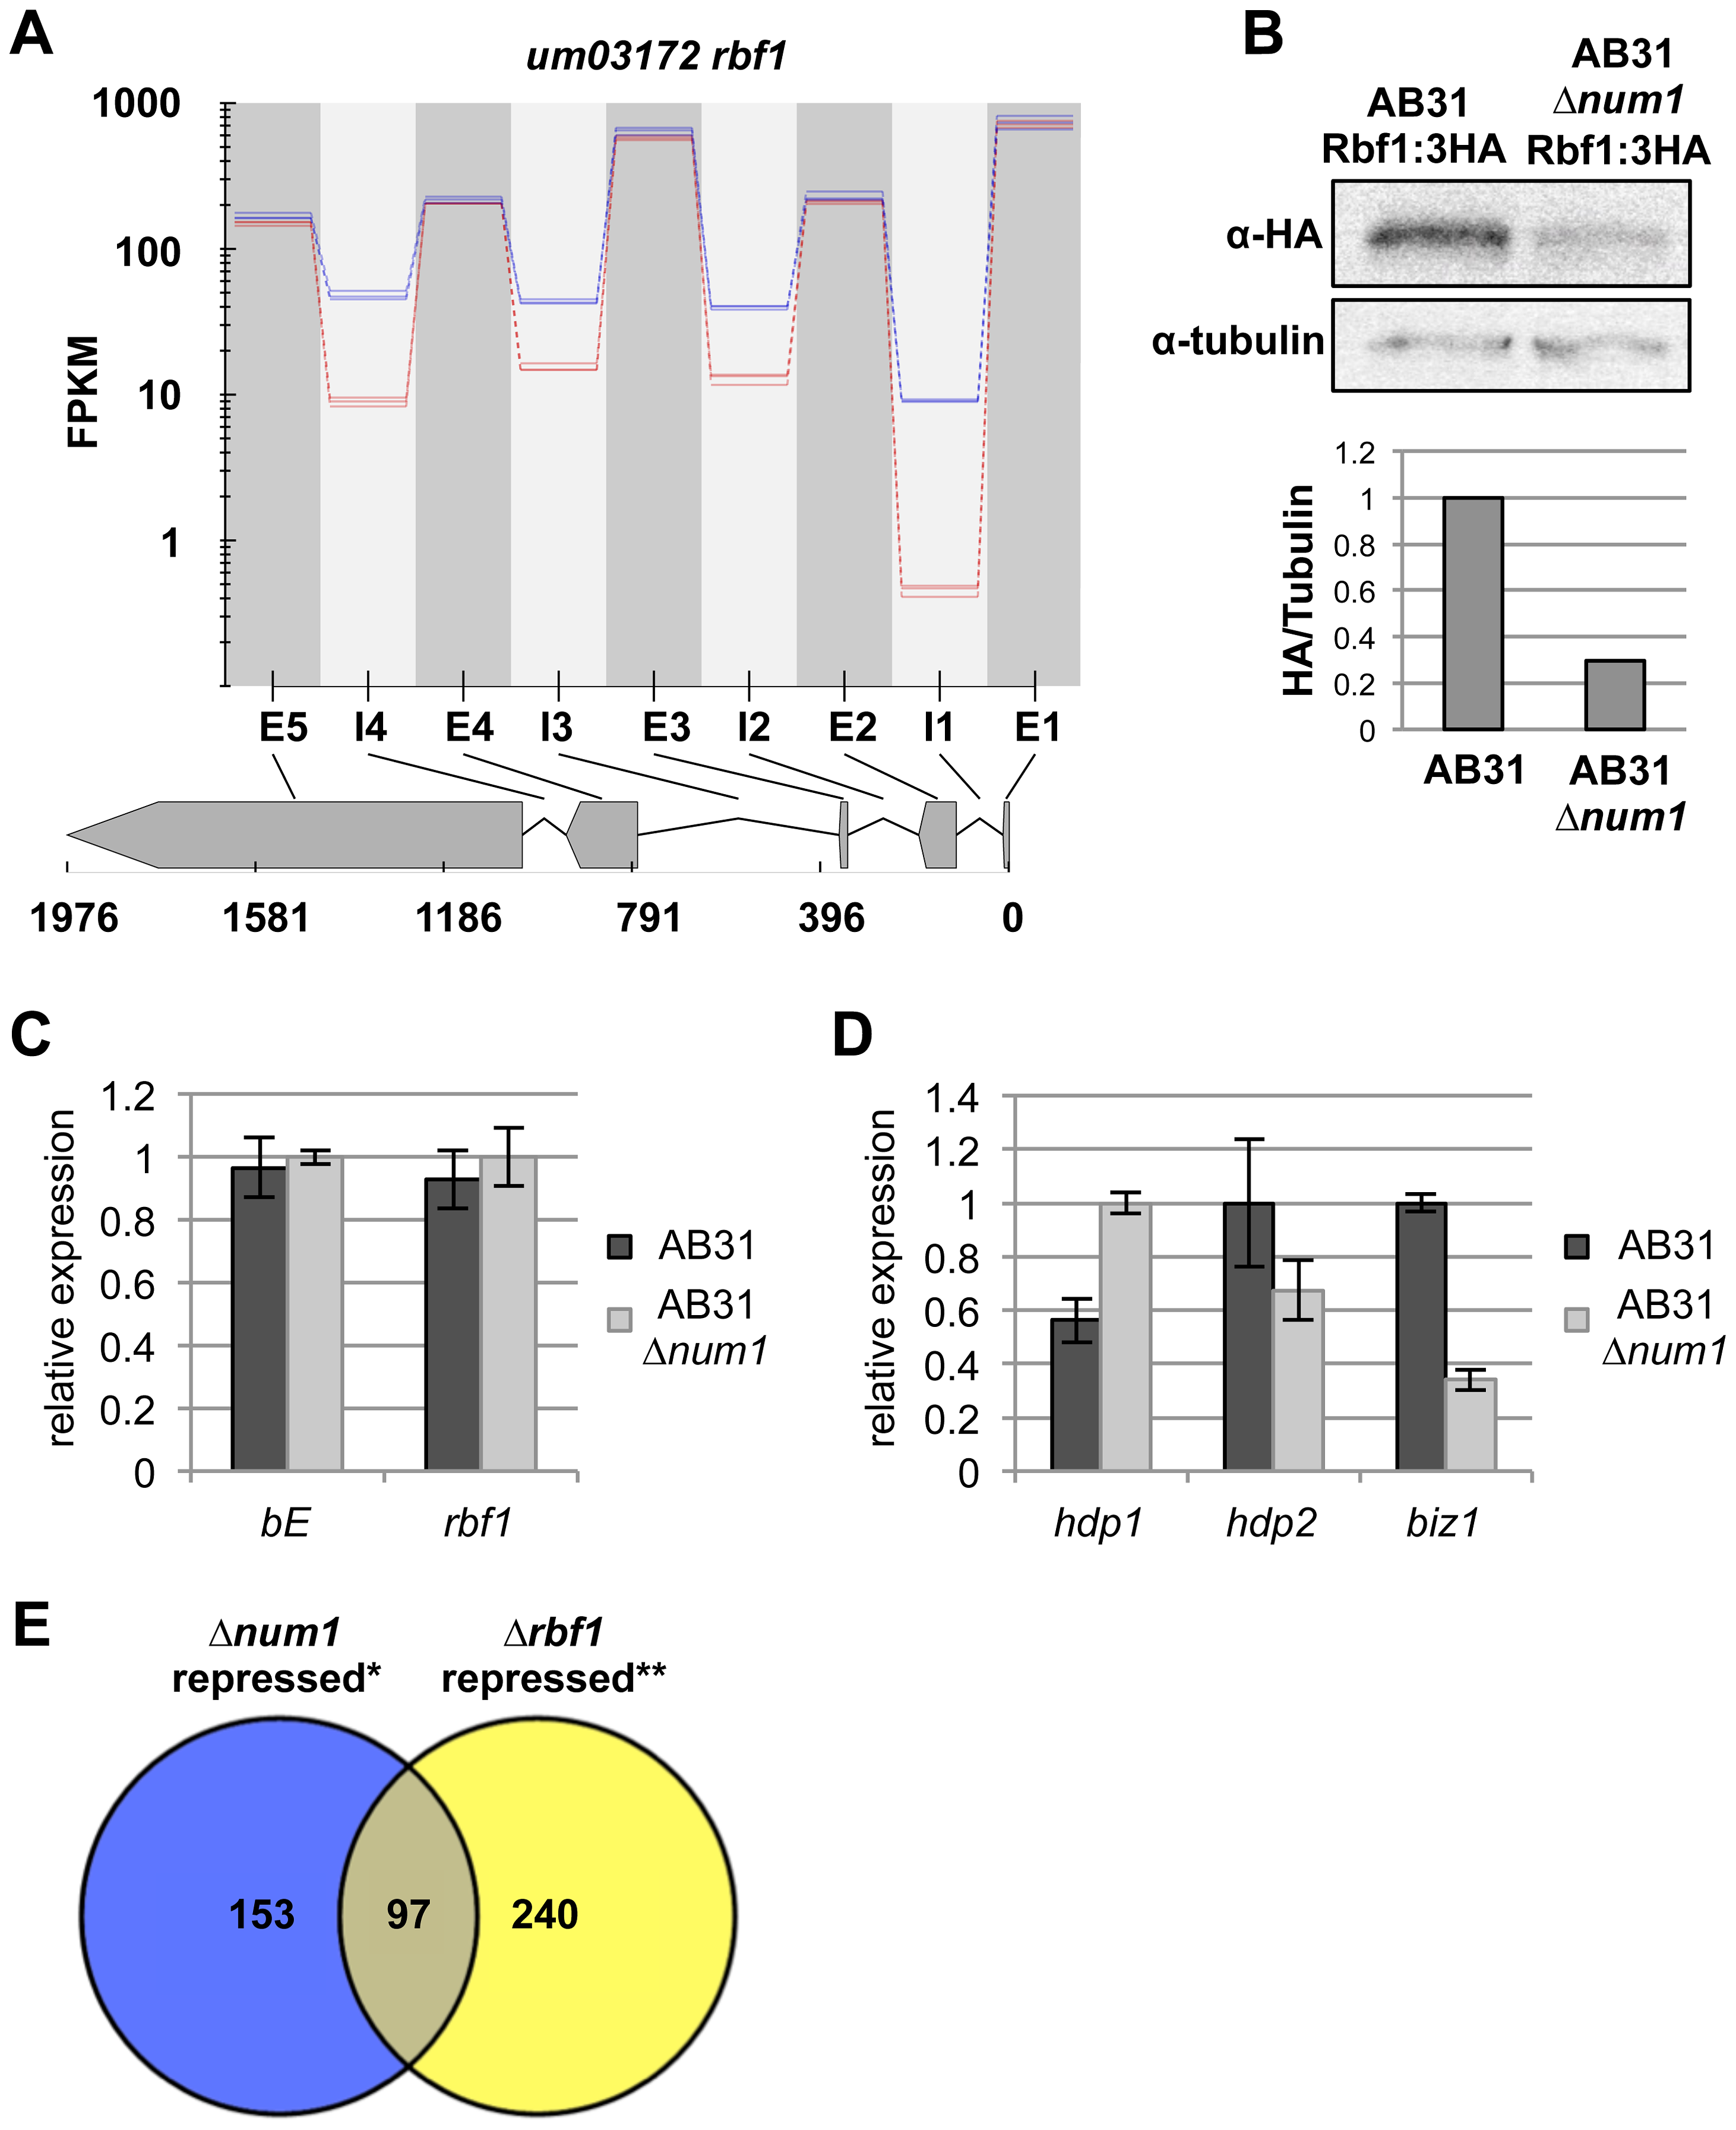 Reduced splicing efficiency of the <i>rbf1</i>-gene leads to impaired function of the Rbf1 master regulator.